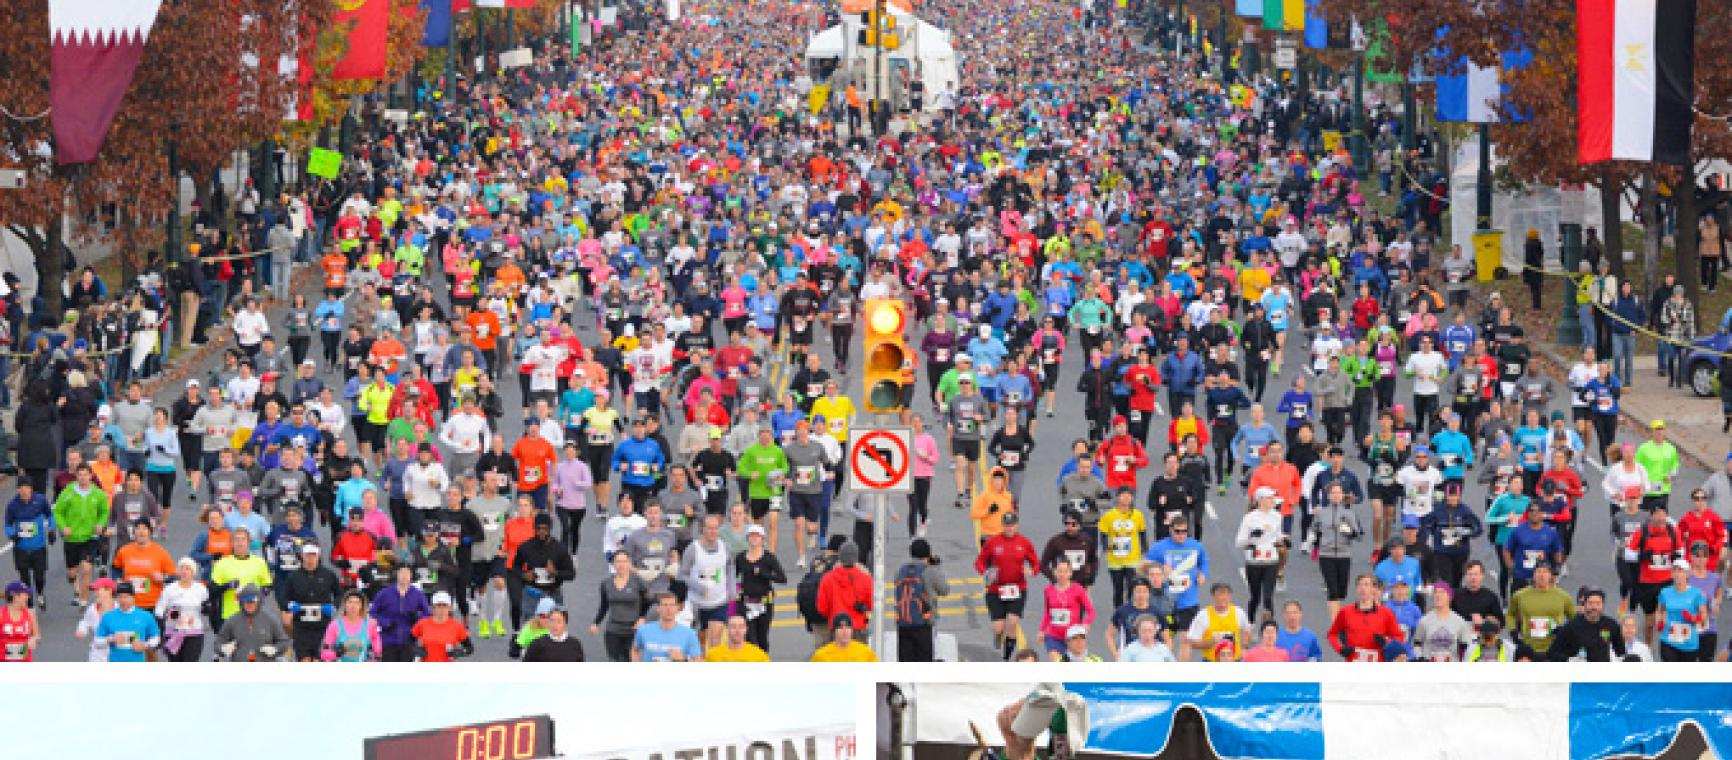 The Philadelphia Marathon Health & Fitness Expo